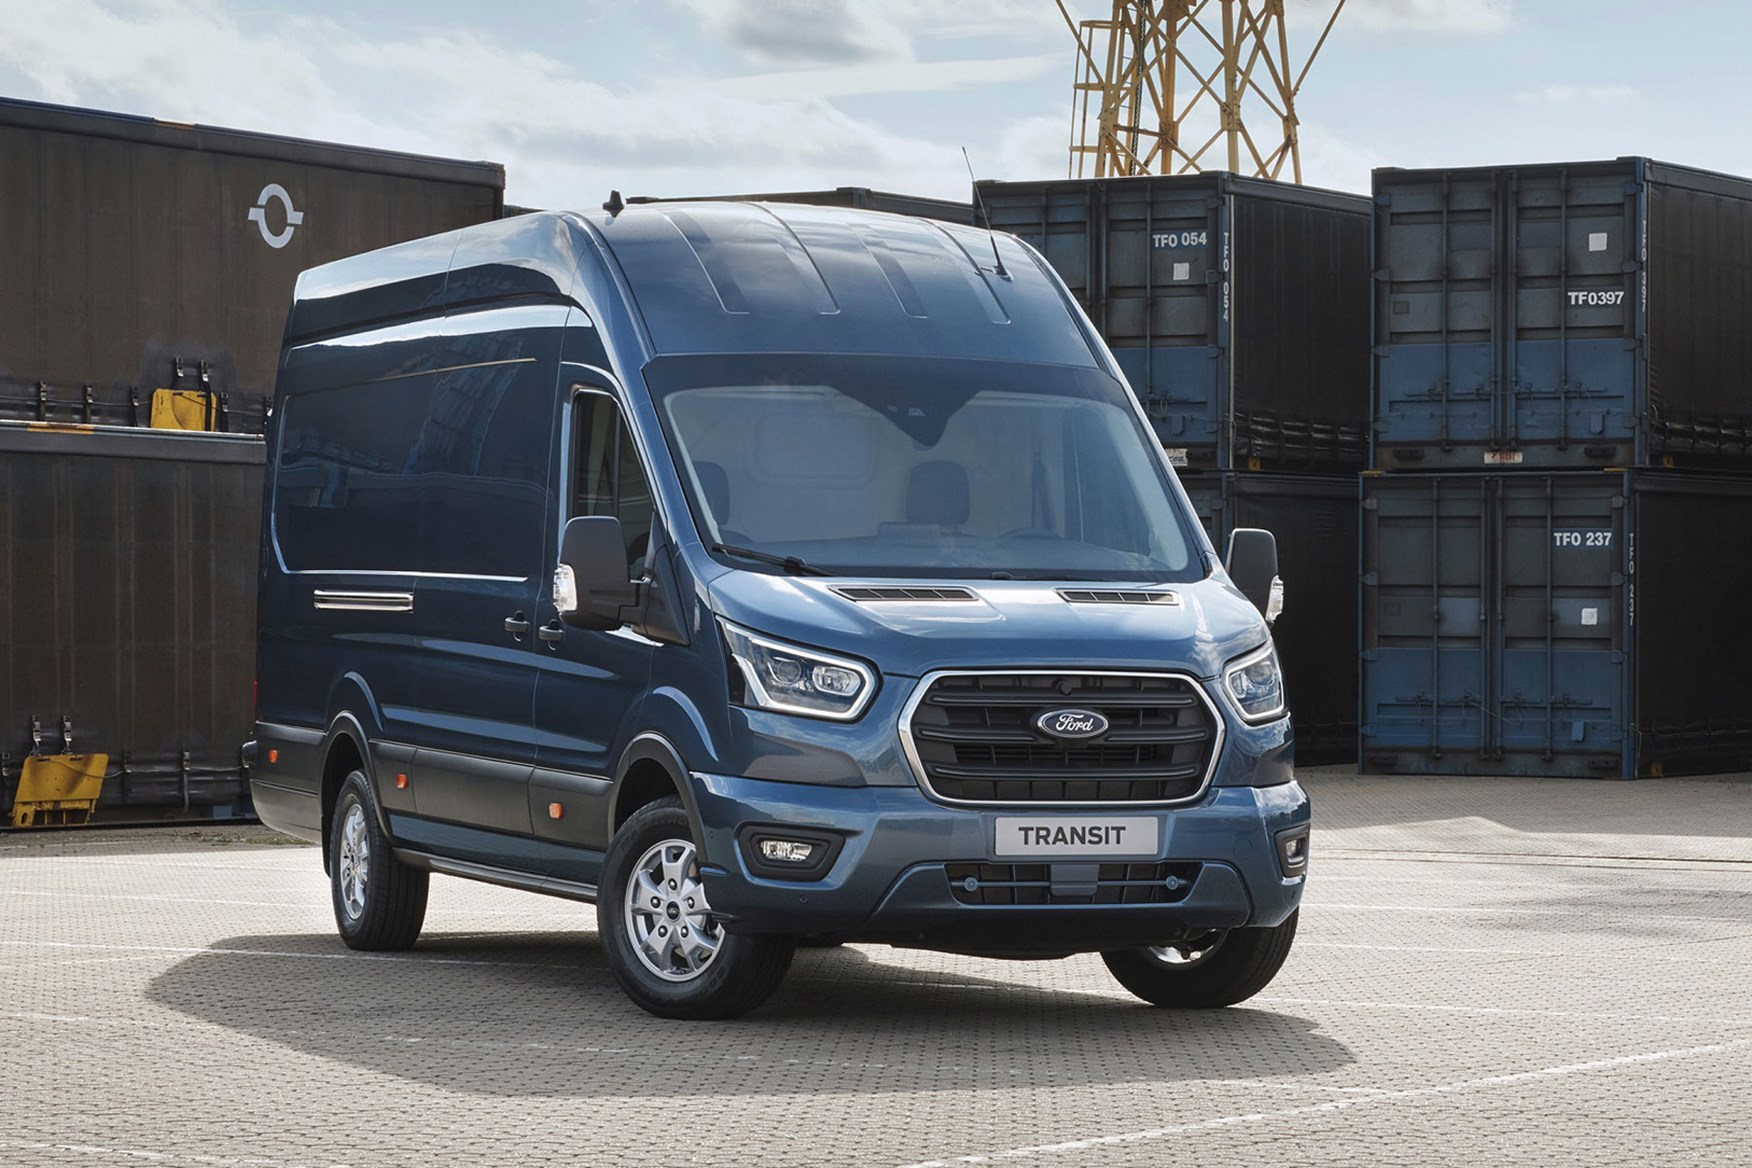 New 2019 Ford Transit Facelift Latest Details From The Cv Show